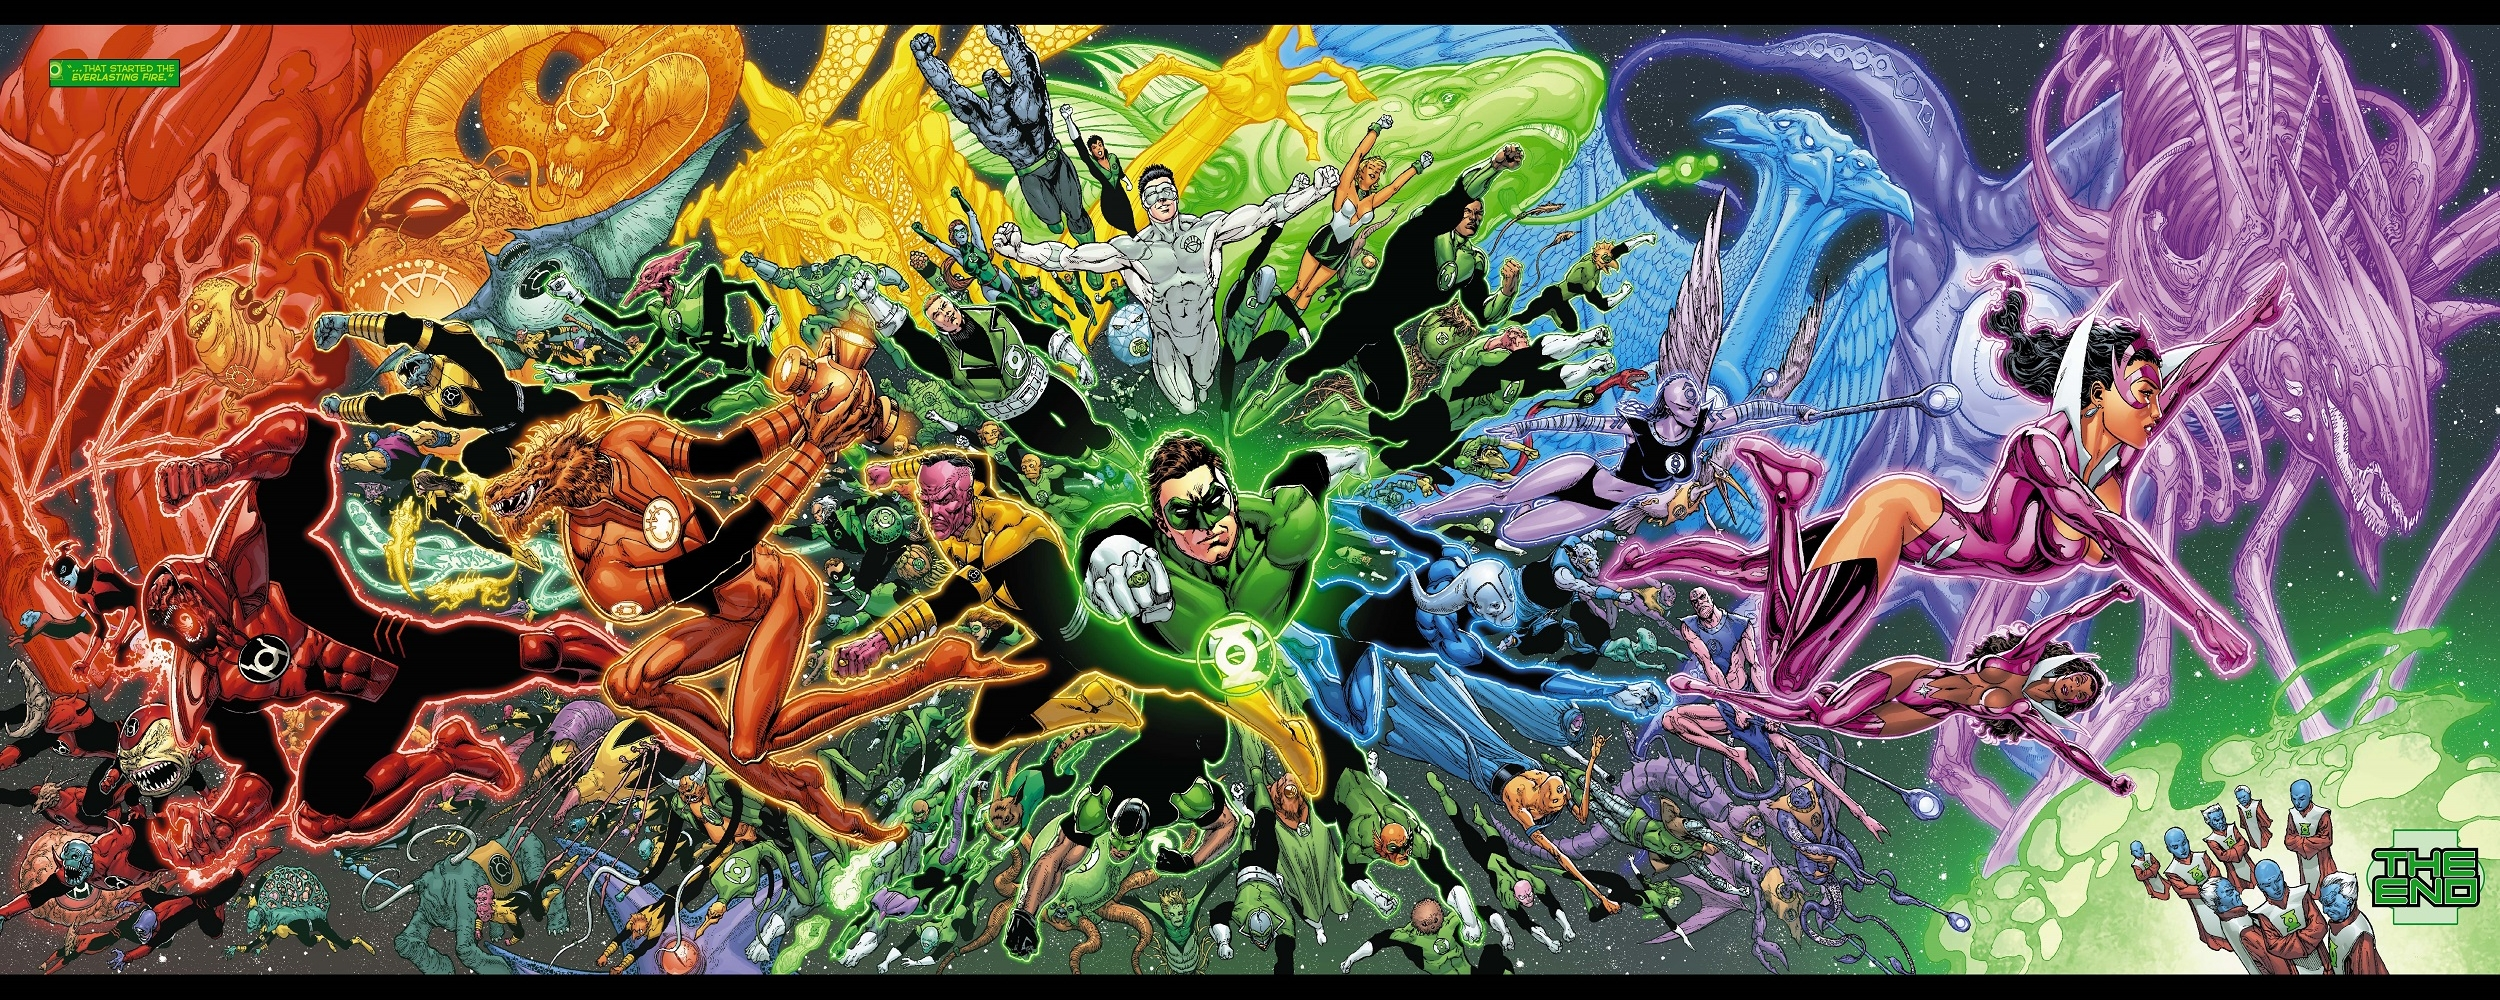 Explore the Collection Green Lantern Comics Green Lantern Corps 407756 2500x1000